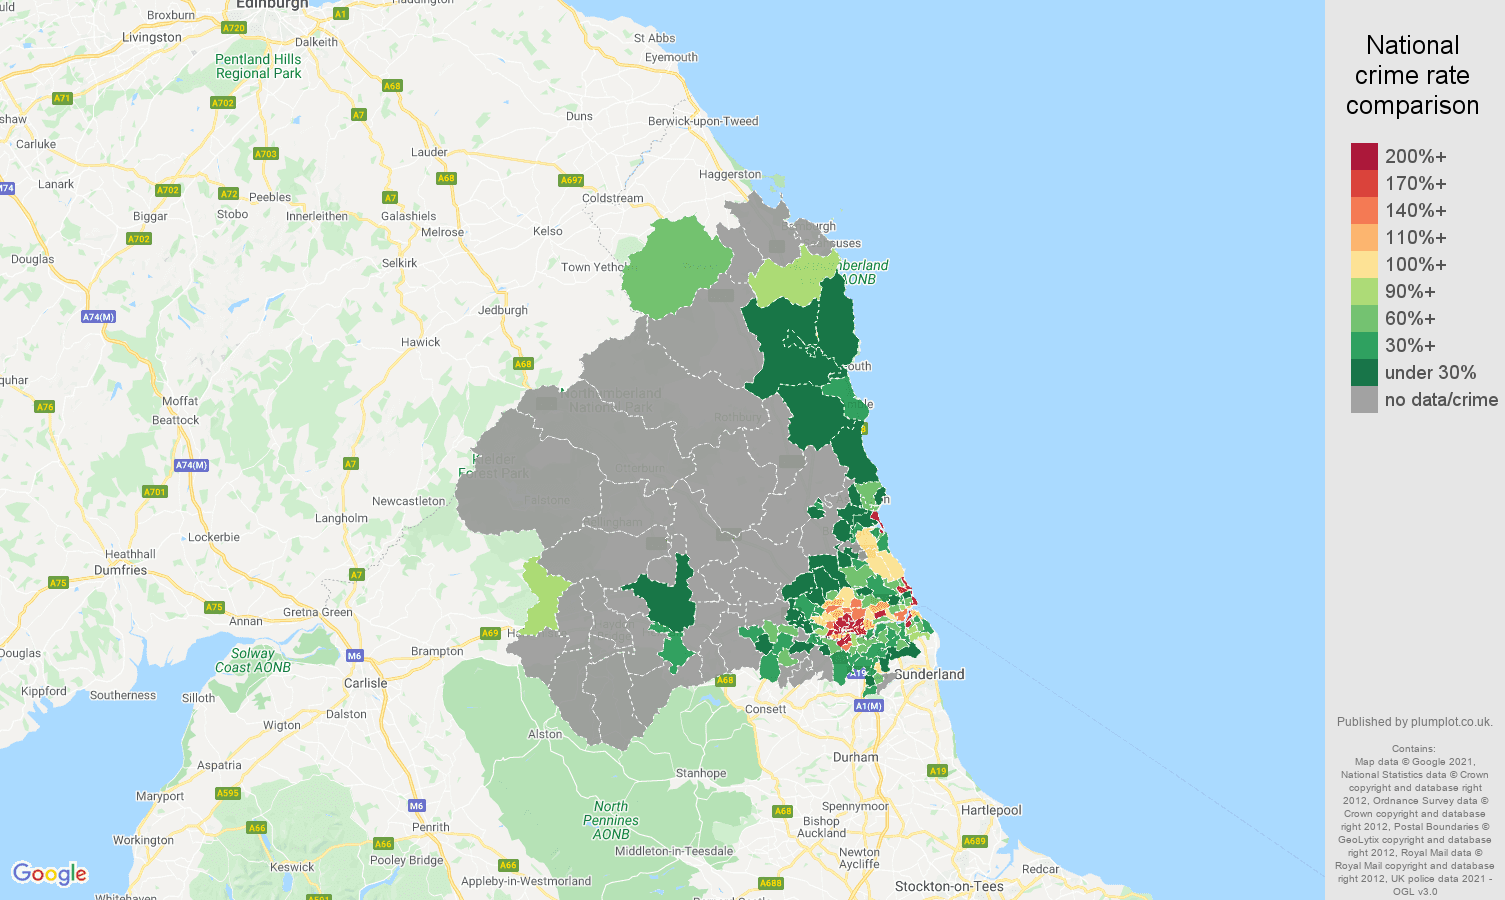 Newcastle upon Tyne bicycle theft crime rate comparison map